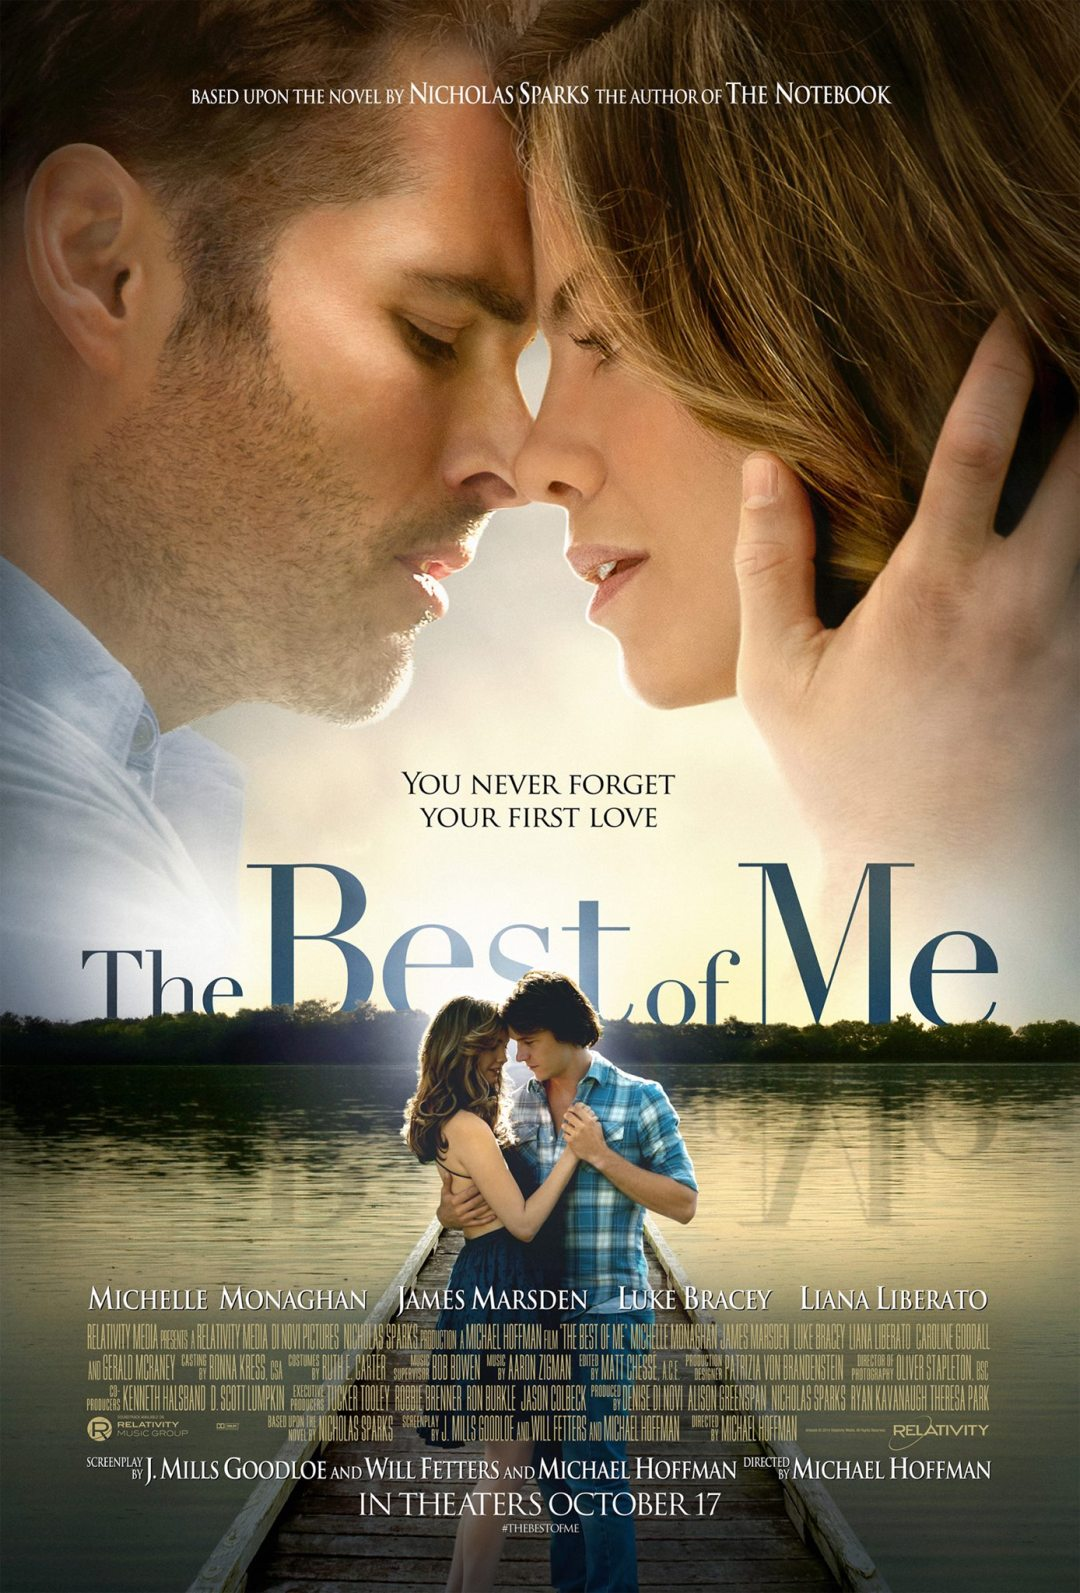 The Best of me  poster is copied by Dilwale